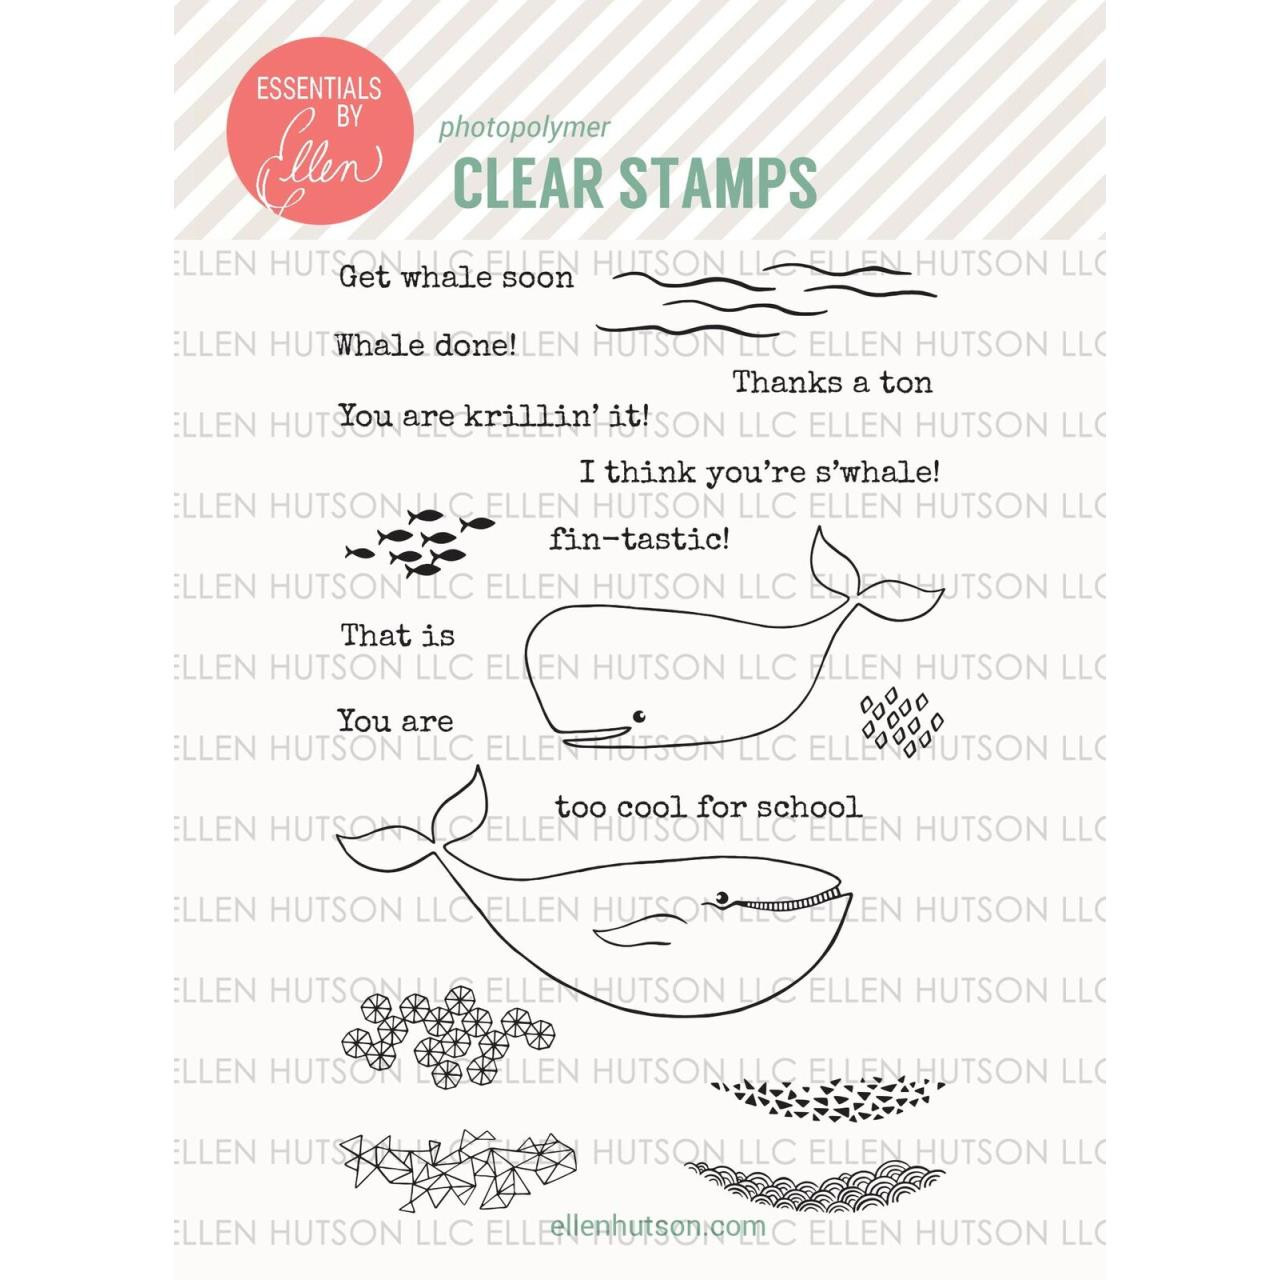 Essentials By Ellen Clear Stamps, S'Whale by Julie Ebersole -